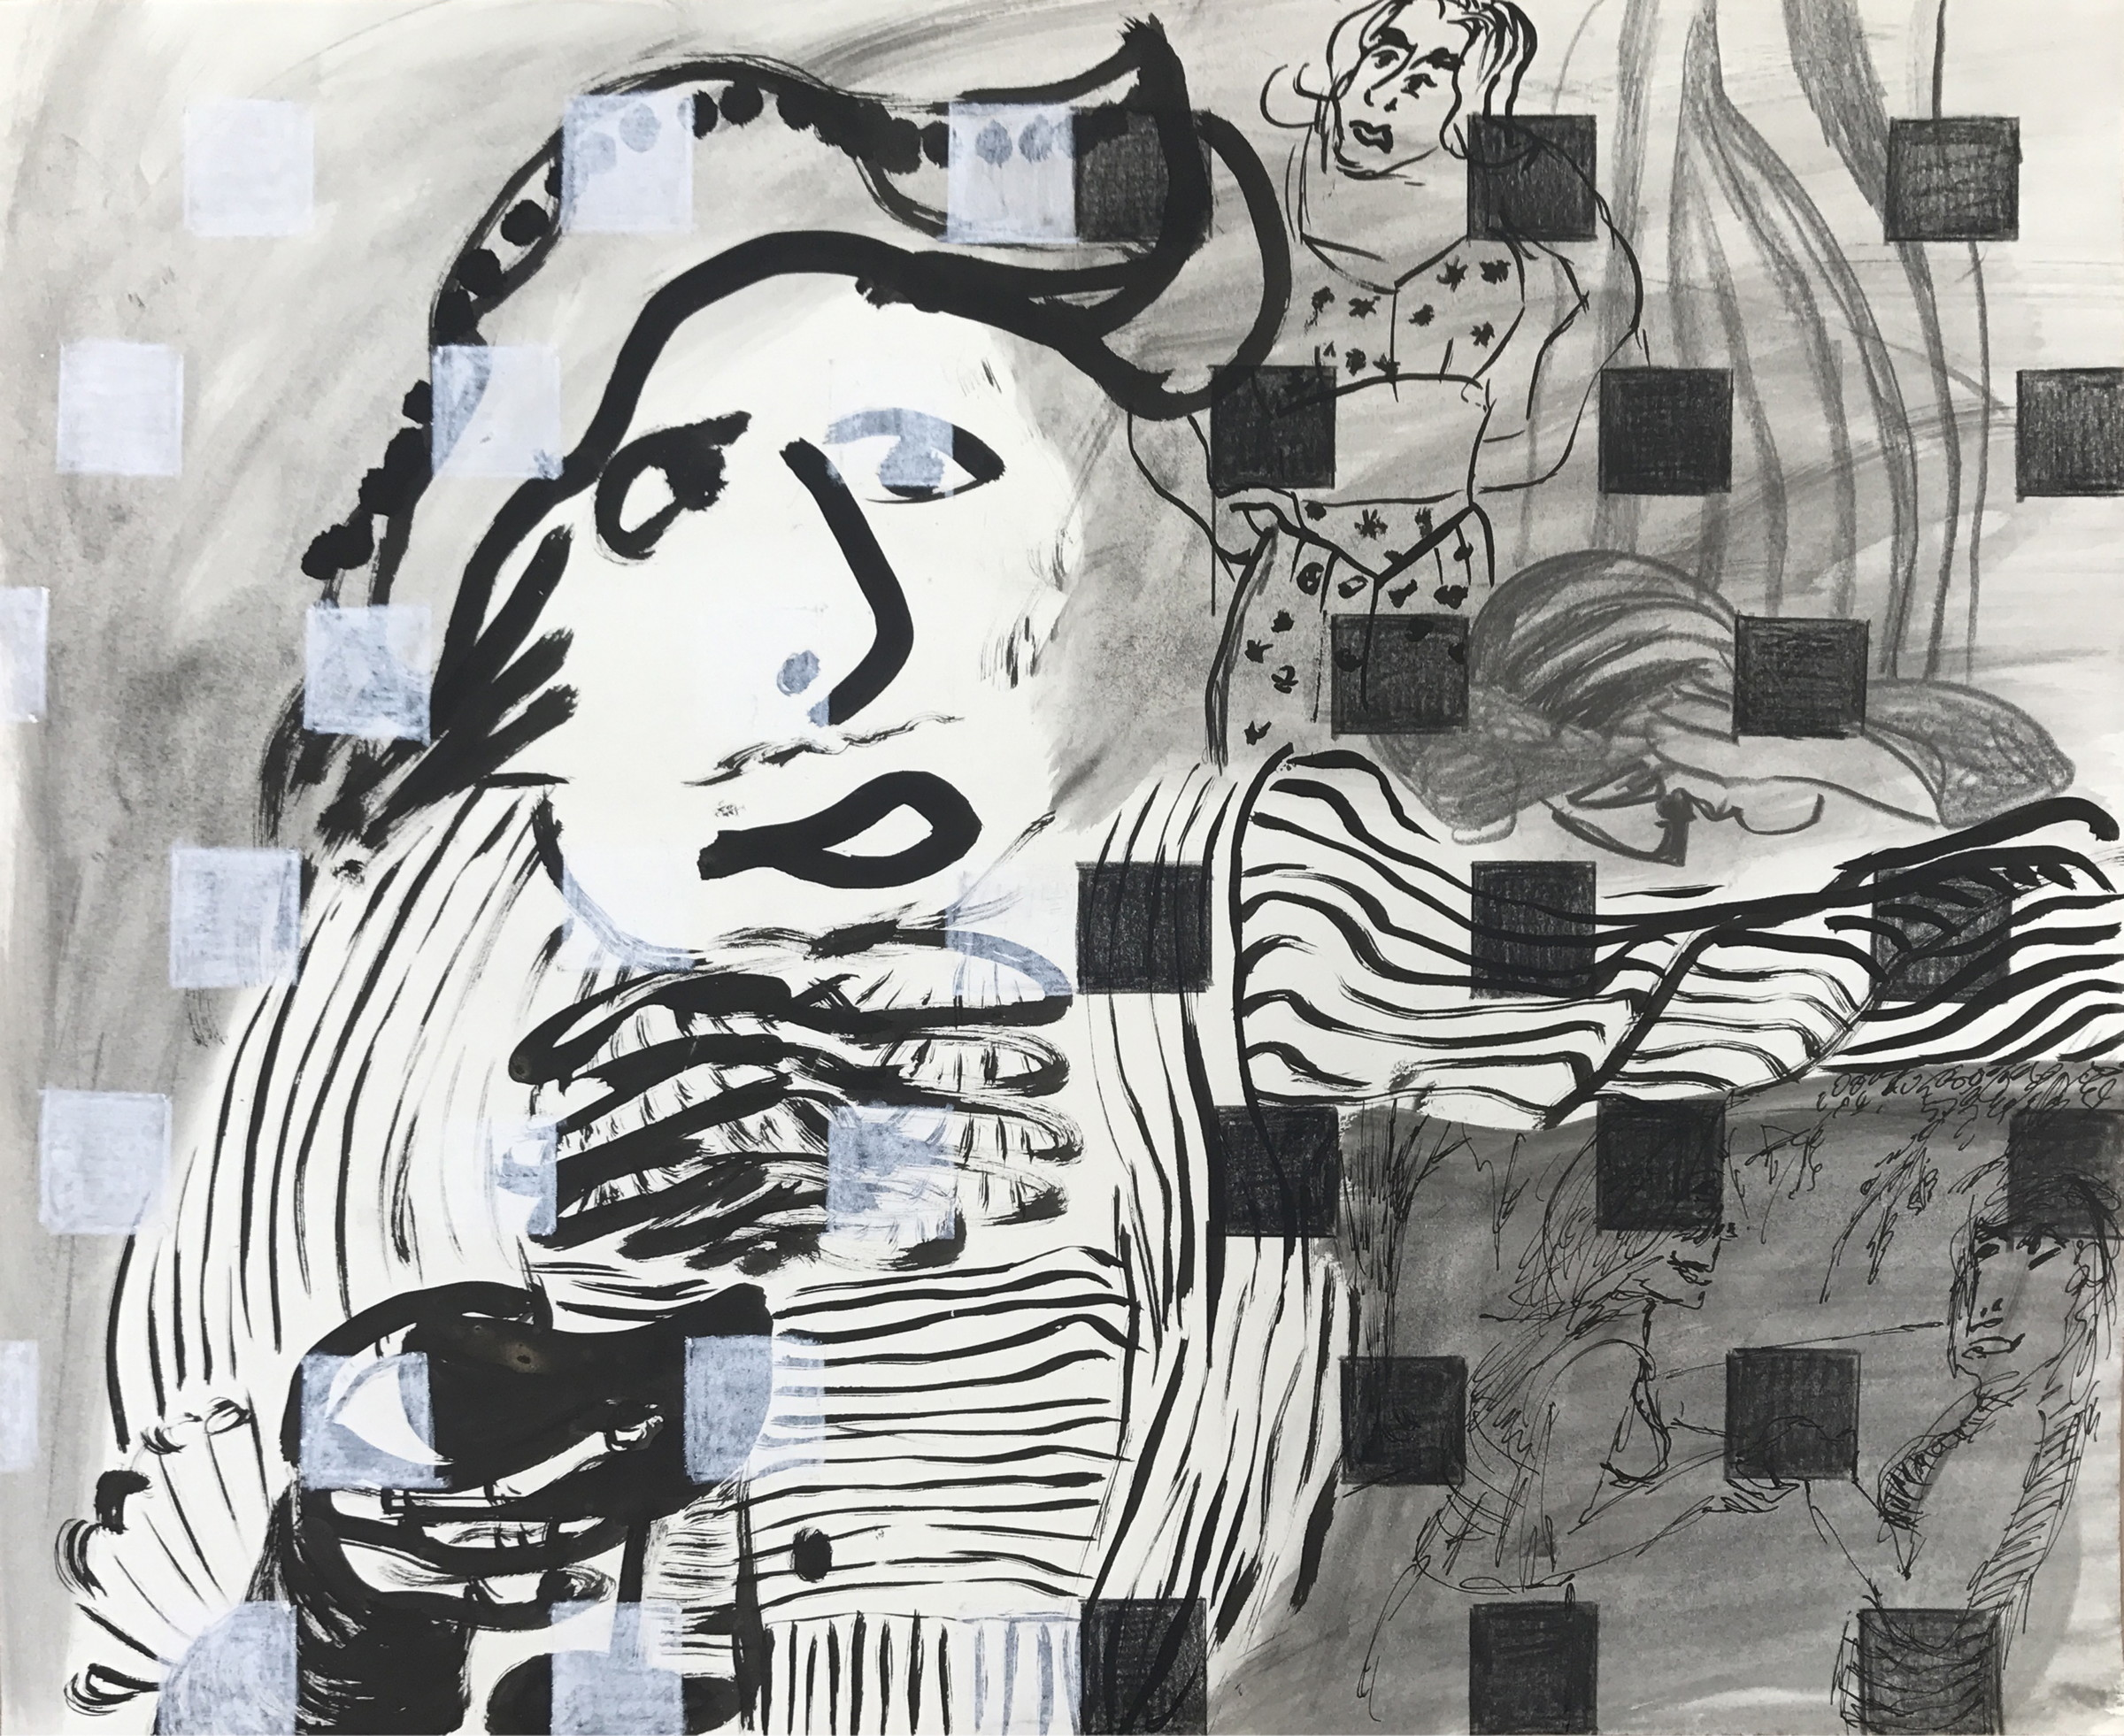 Sofi Brazzeal,  Untitled (figure with striped shirt and squares), 2 015, ink, charcoal, color pencil, pencil and oil pastel on paper, 14 x 17 in.